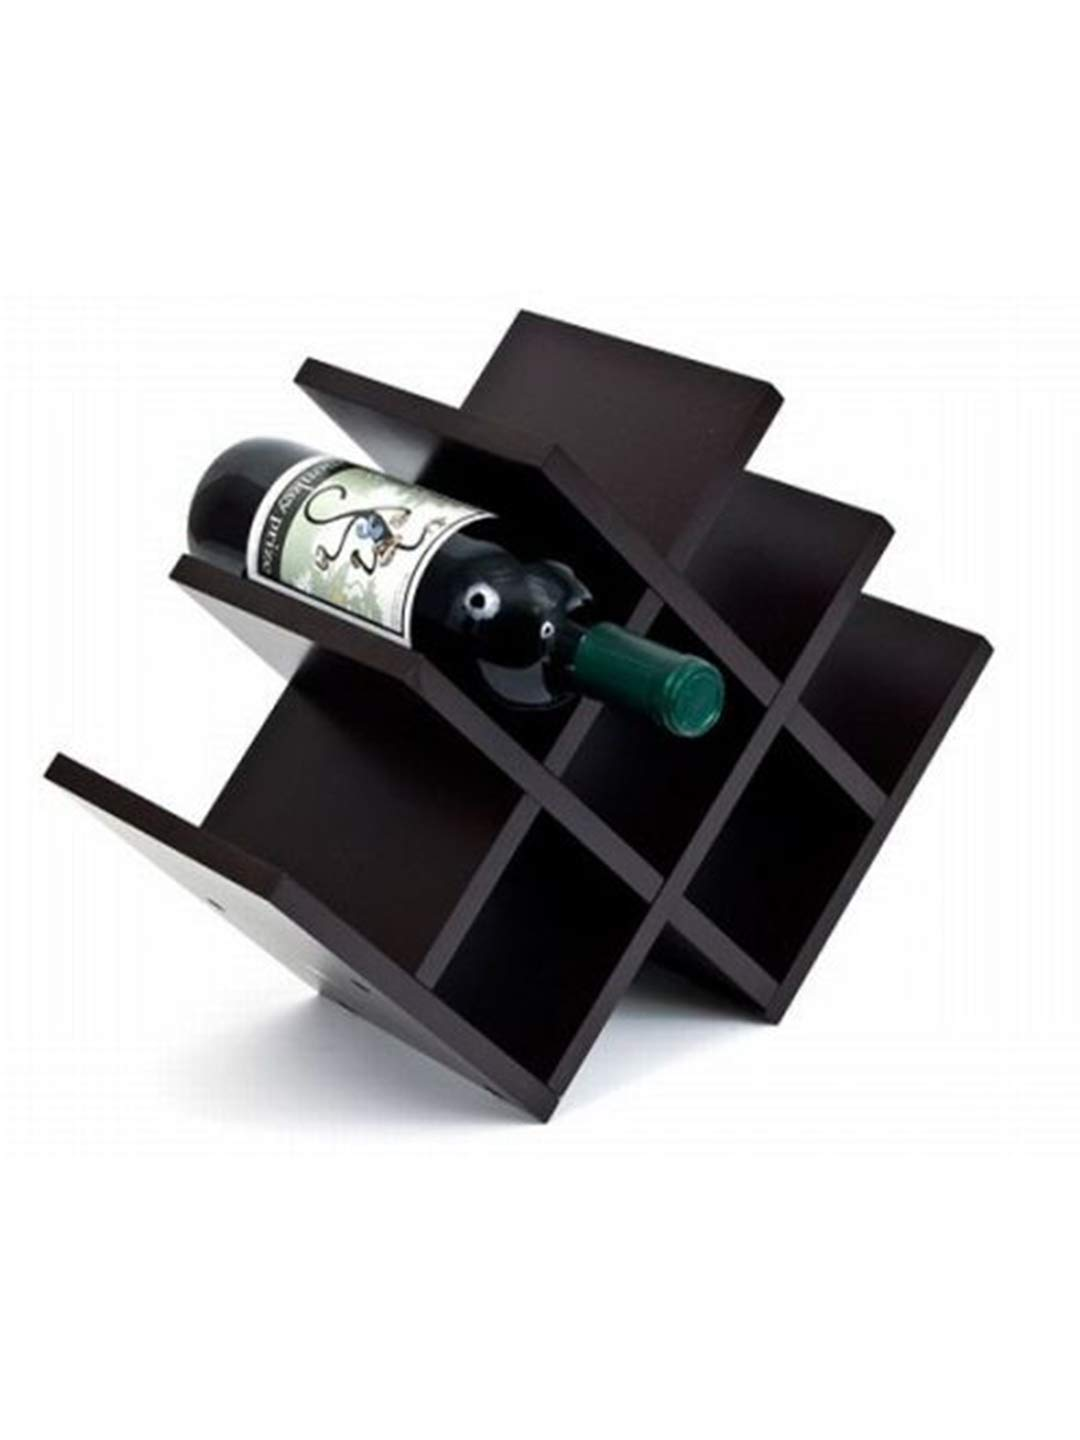 Algofi 8 Bottle Pyramid Wooden Wine Rack Holder Organizer Display Shelf (Black)